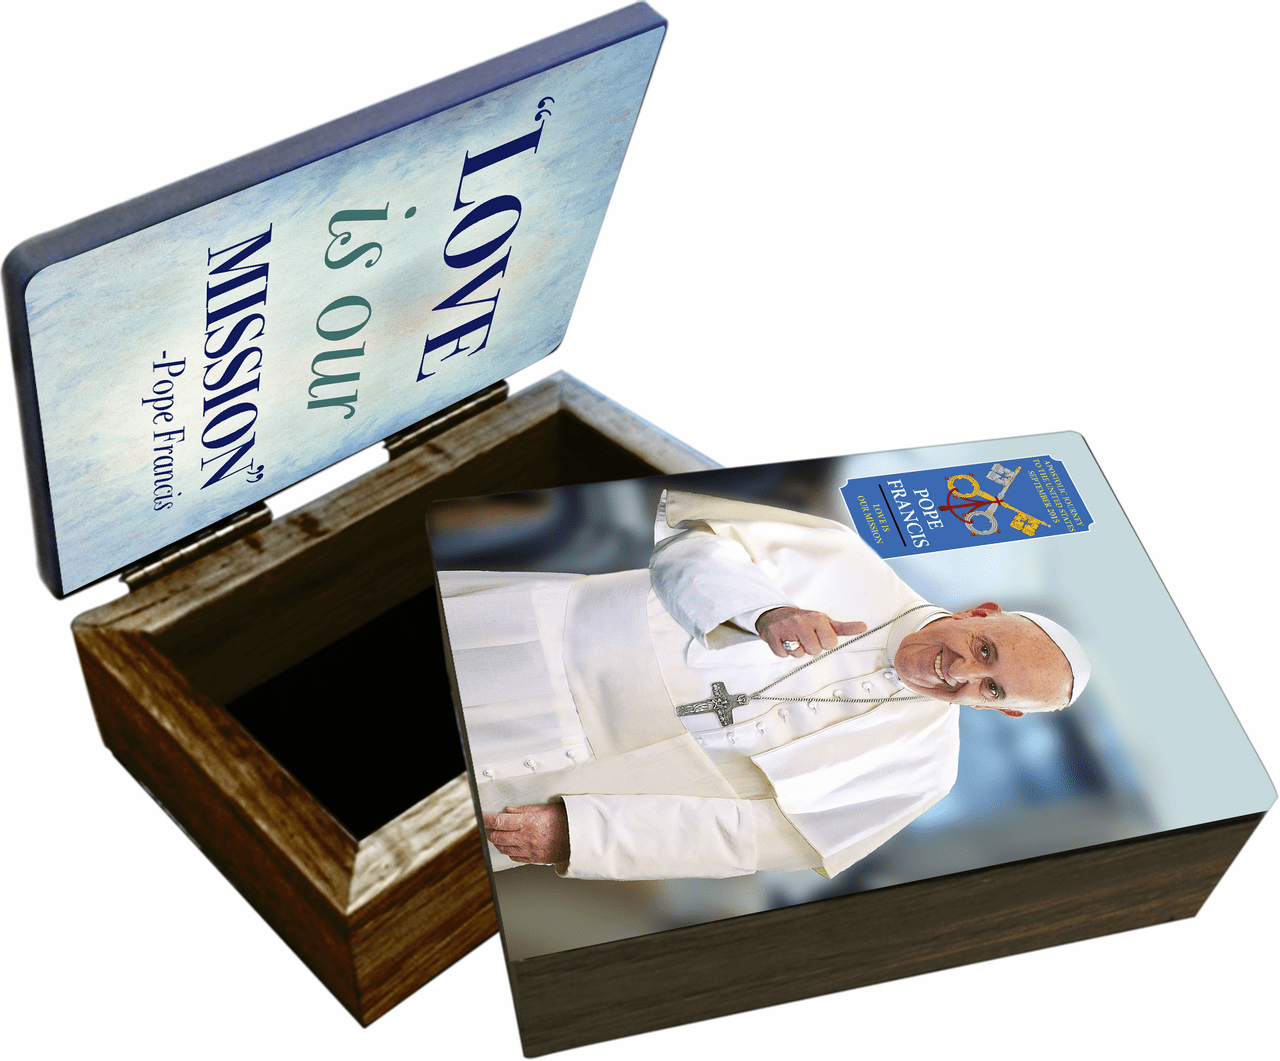 Nelson's Pope Francis Thumbs Commemorative Apostolic Journey Wooden Rosary and Keepsake Box